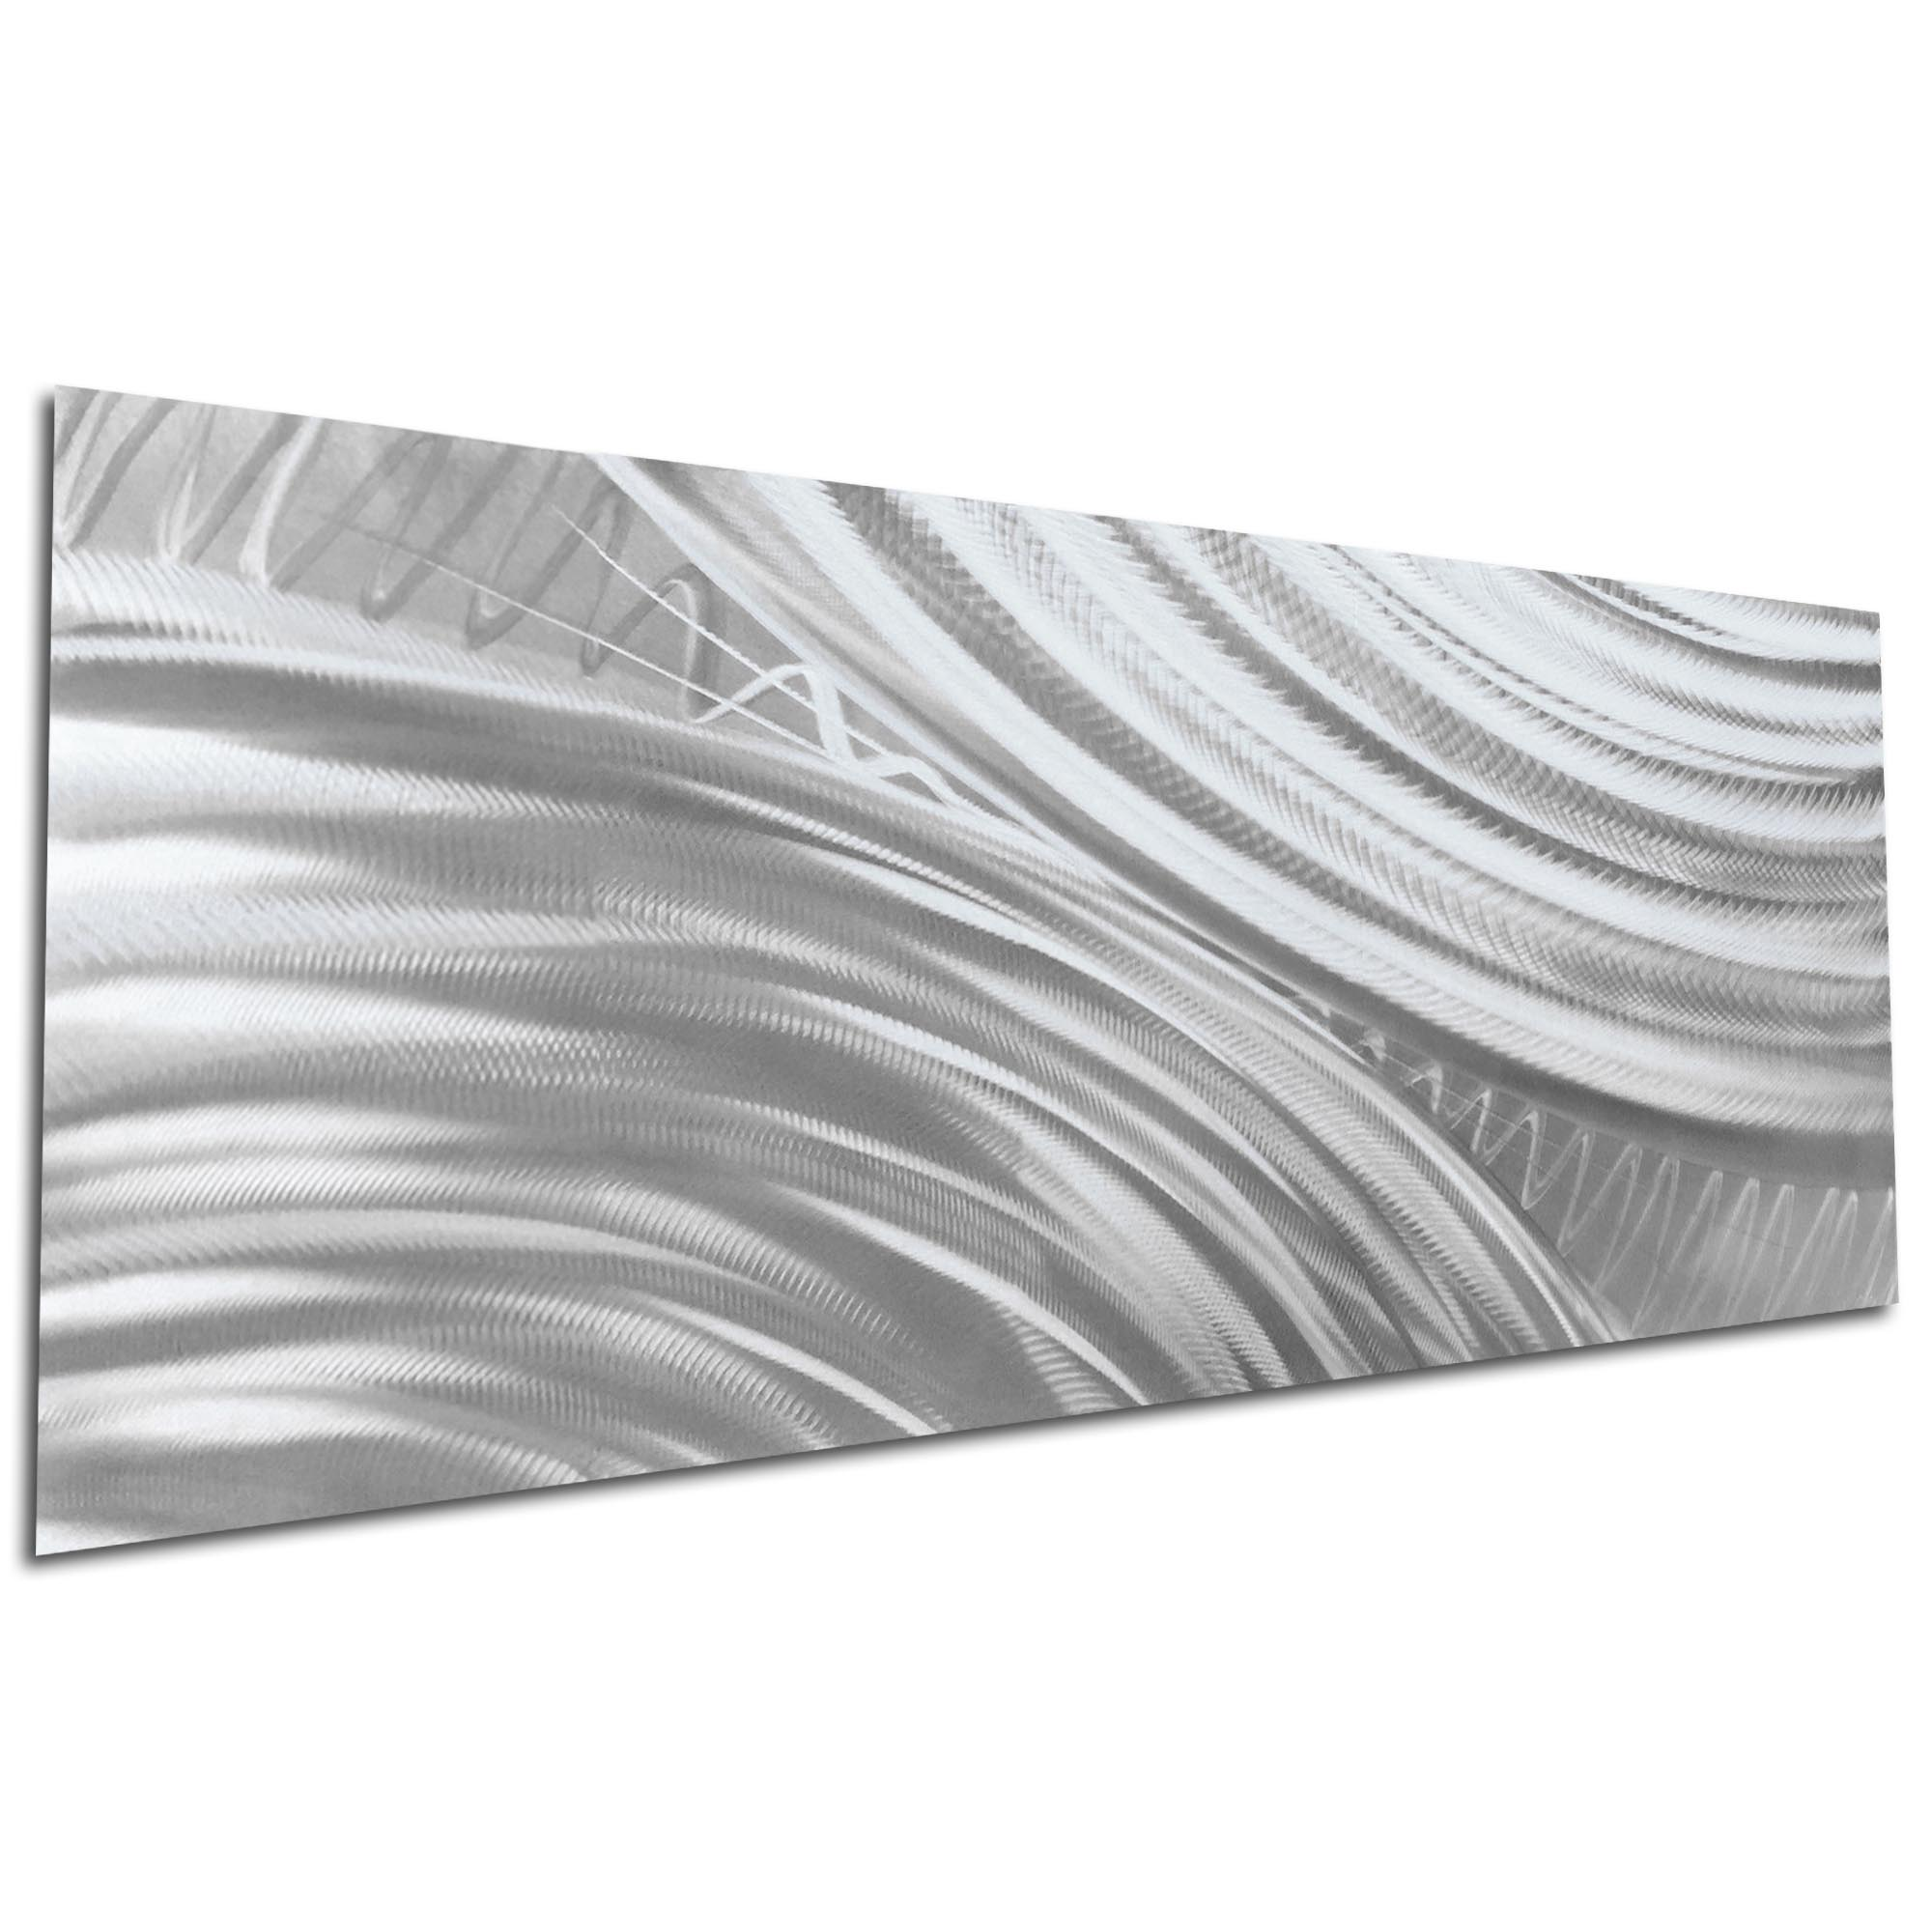 Moment of Impact Silver by Helena Martin - Original Abstract Art on Ground Metal - Image 3